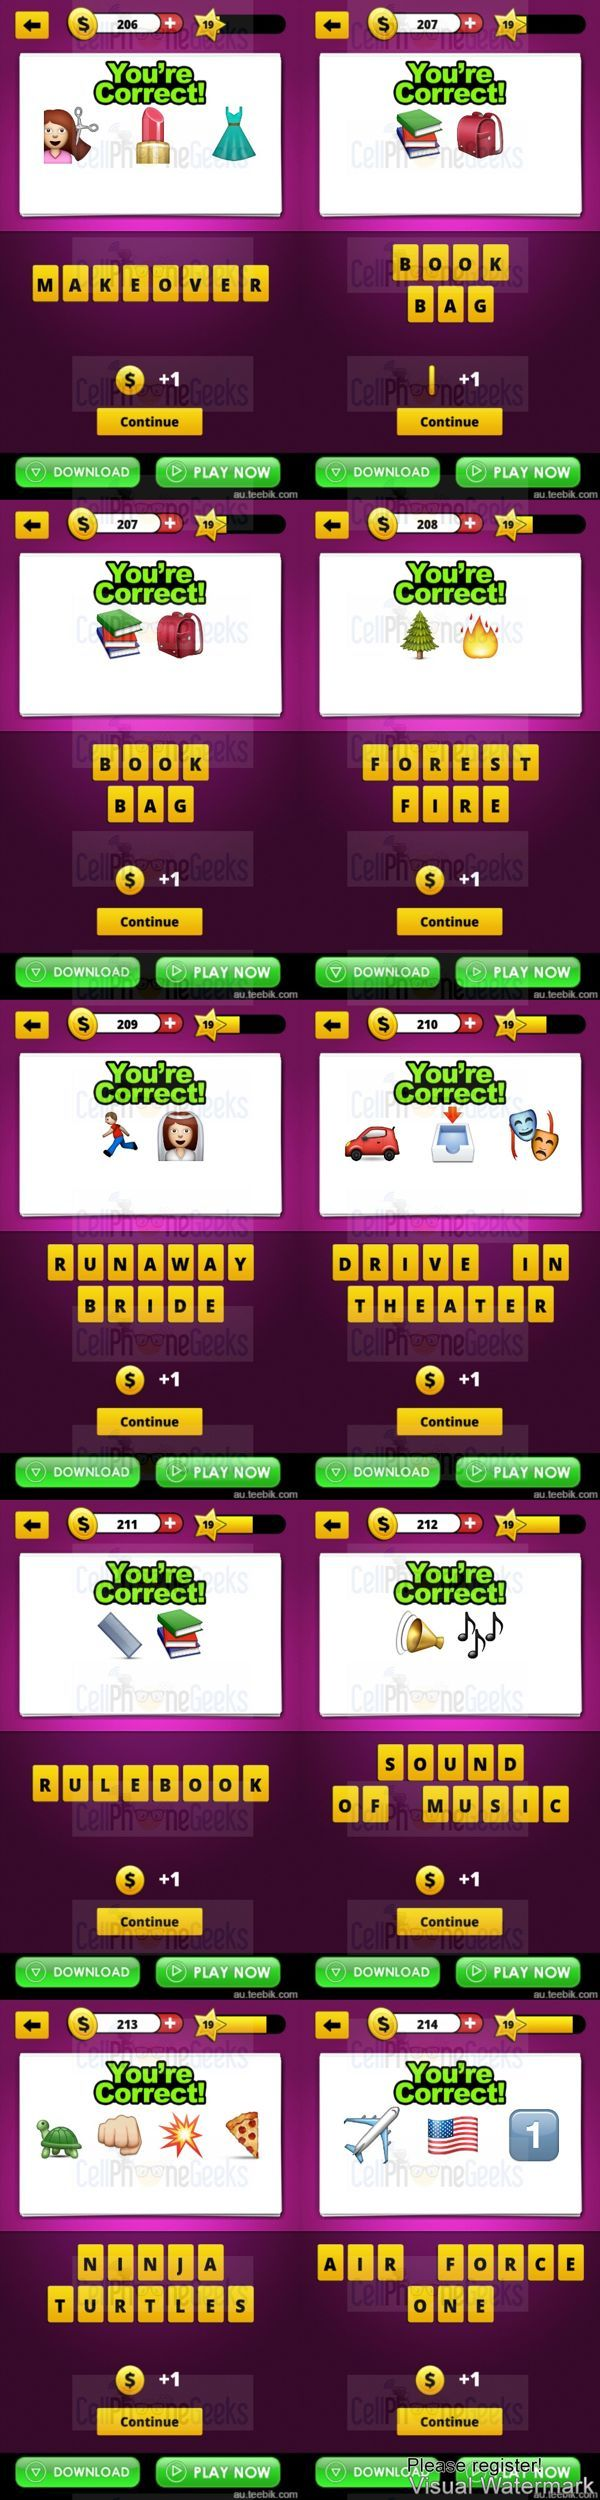 Word Games - Daily Word Search, Crossword, Puzzle Games!